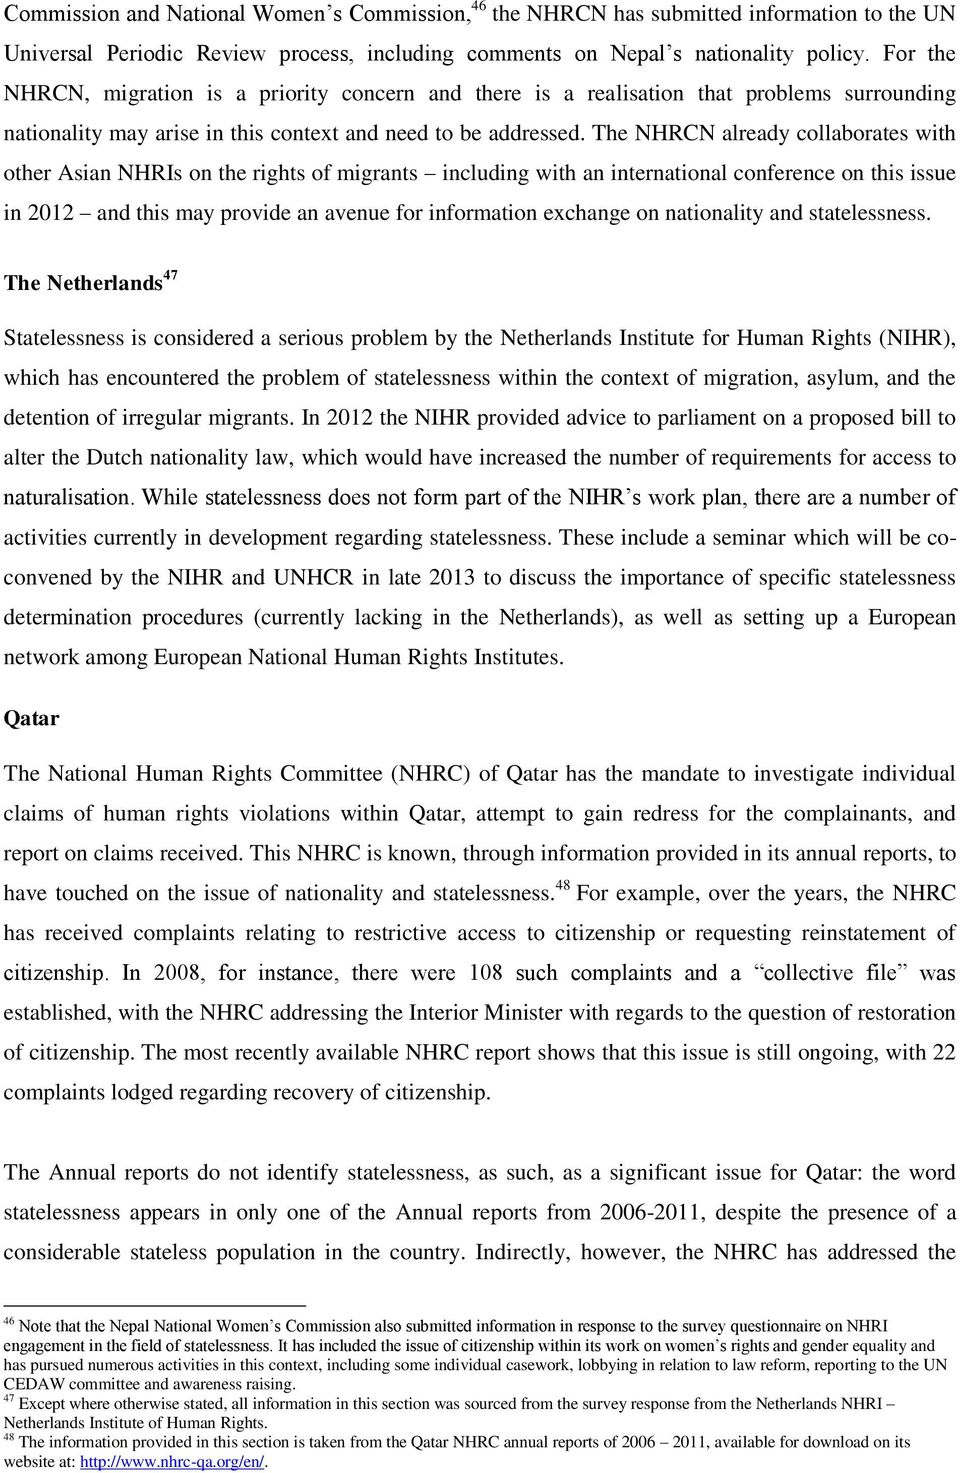 The NHRCN already collaborates with other Asian NHRIs on the rights of migrants including with an international conference on this issue in 2012 and this may provide an avenue for information